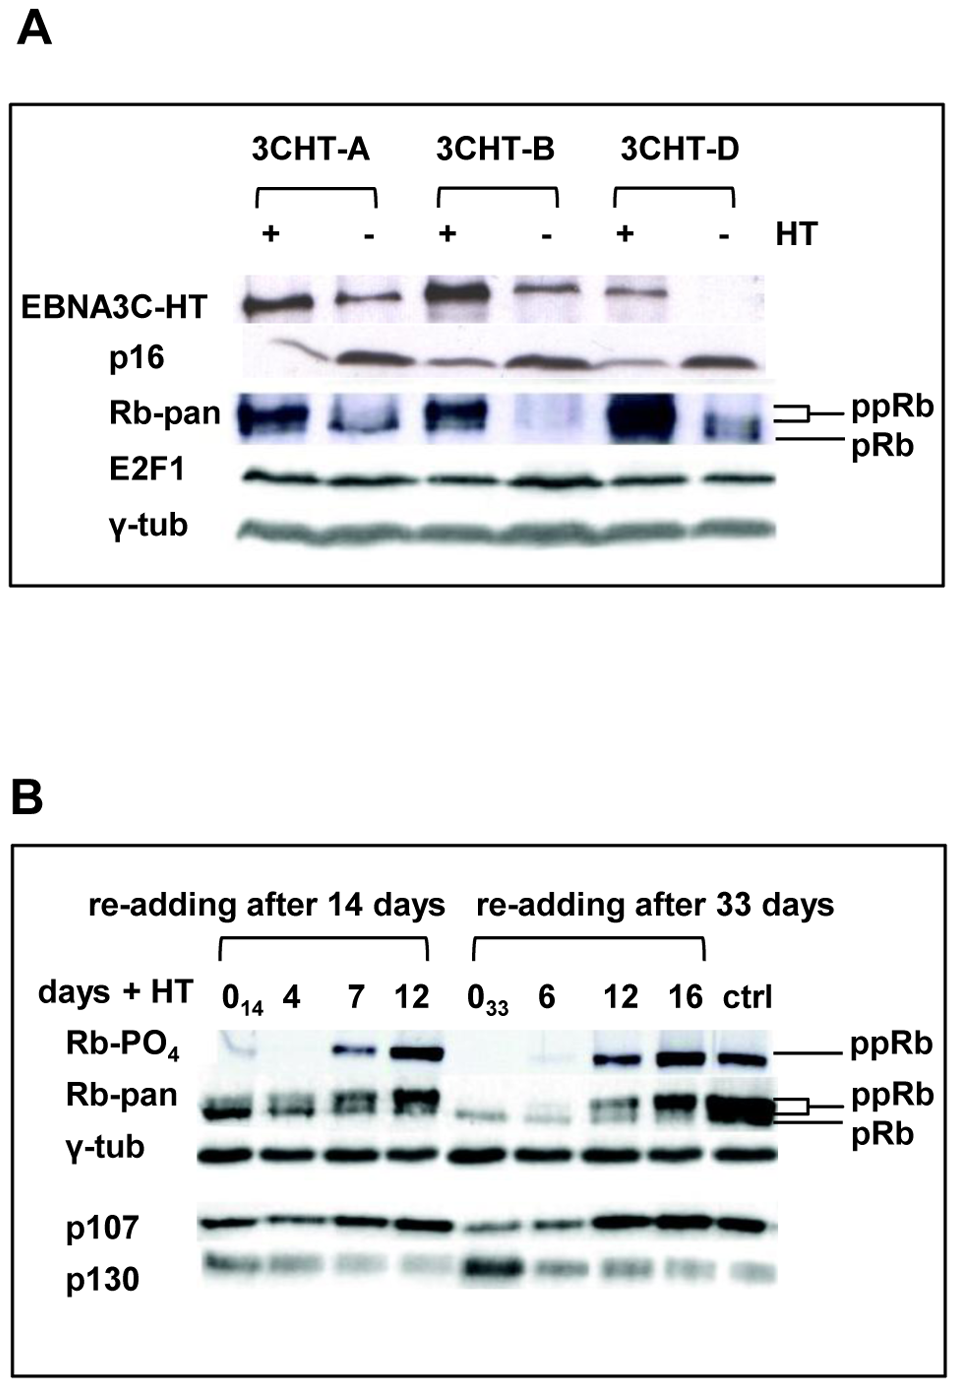 Inactivation of EBNA3C and accumulation of <i>p16<sup>INK4A</sup></i> leads to de-phosphorylation of Rb, reduced expression of p107 and an increase in p130; activation of EBNA3C reverses these processes.